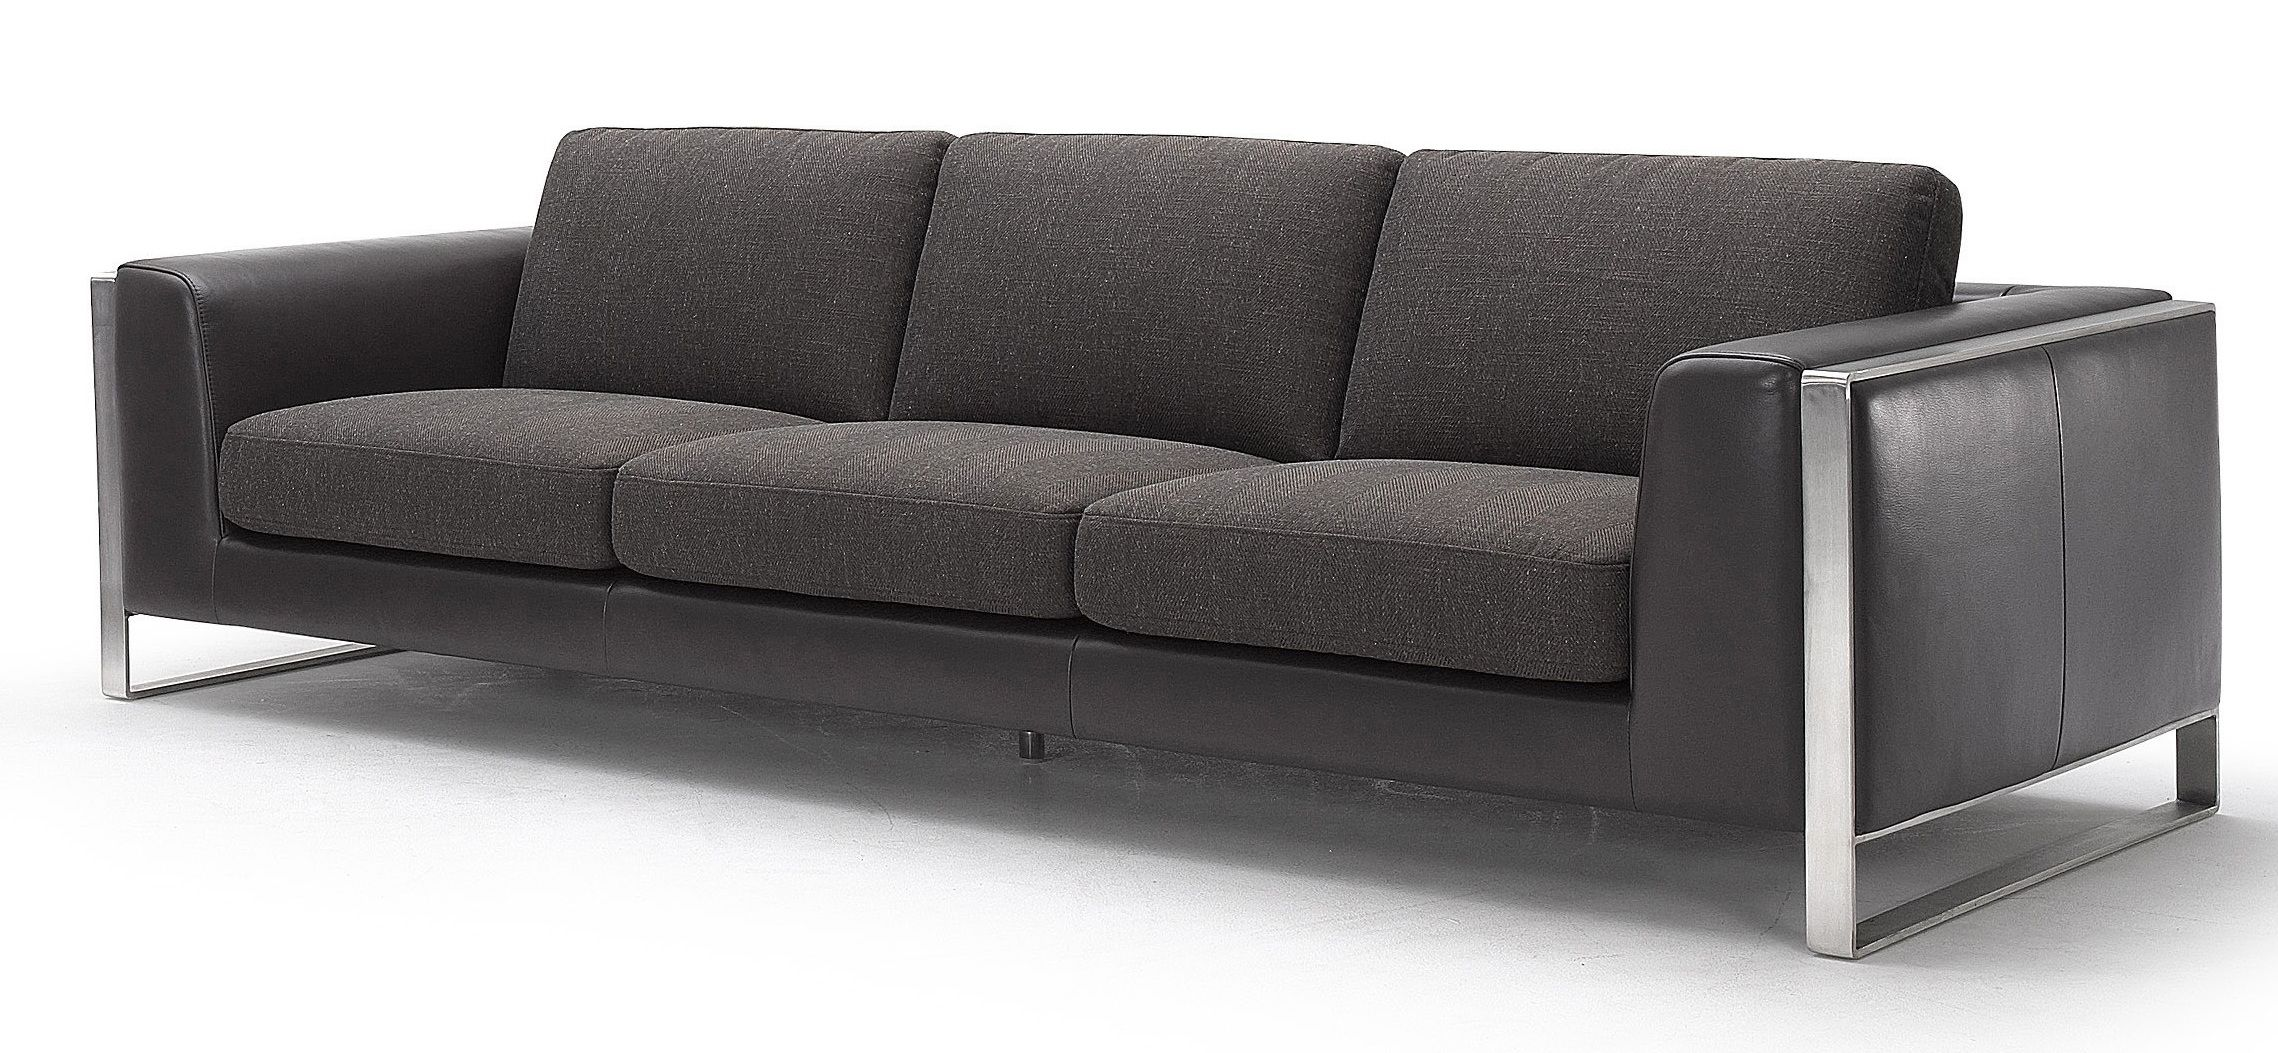 Home Furniture Improvement with Contemporary Sofa